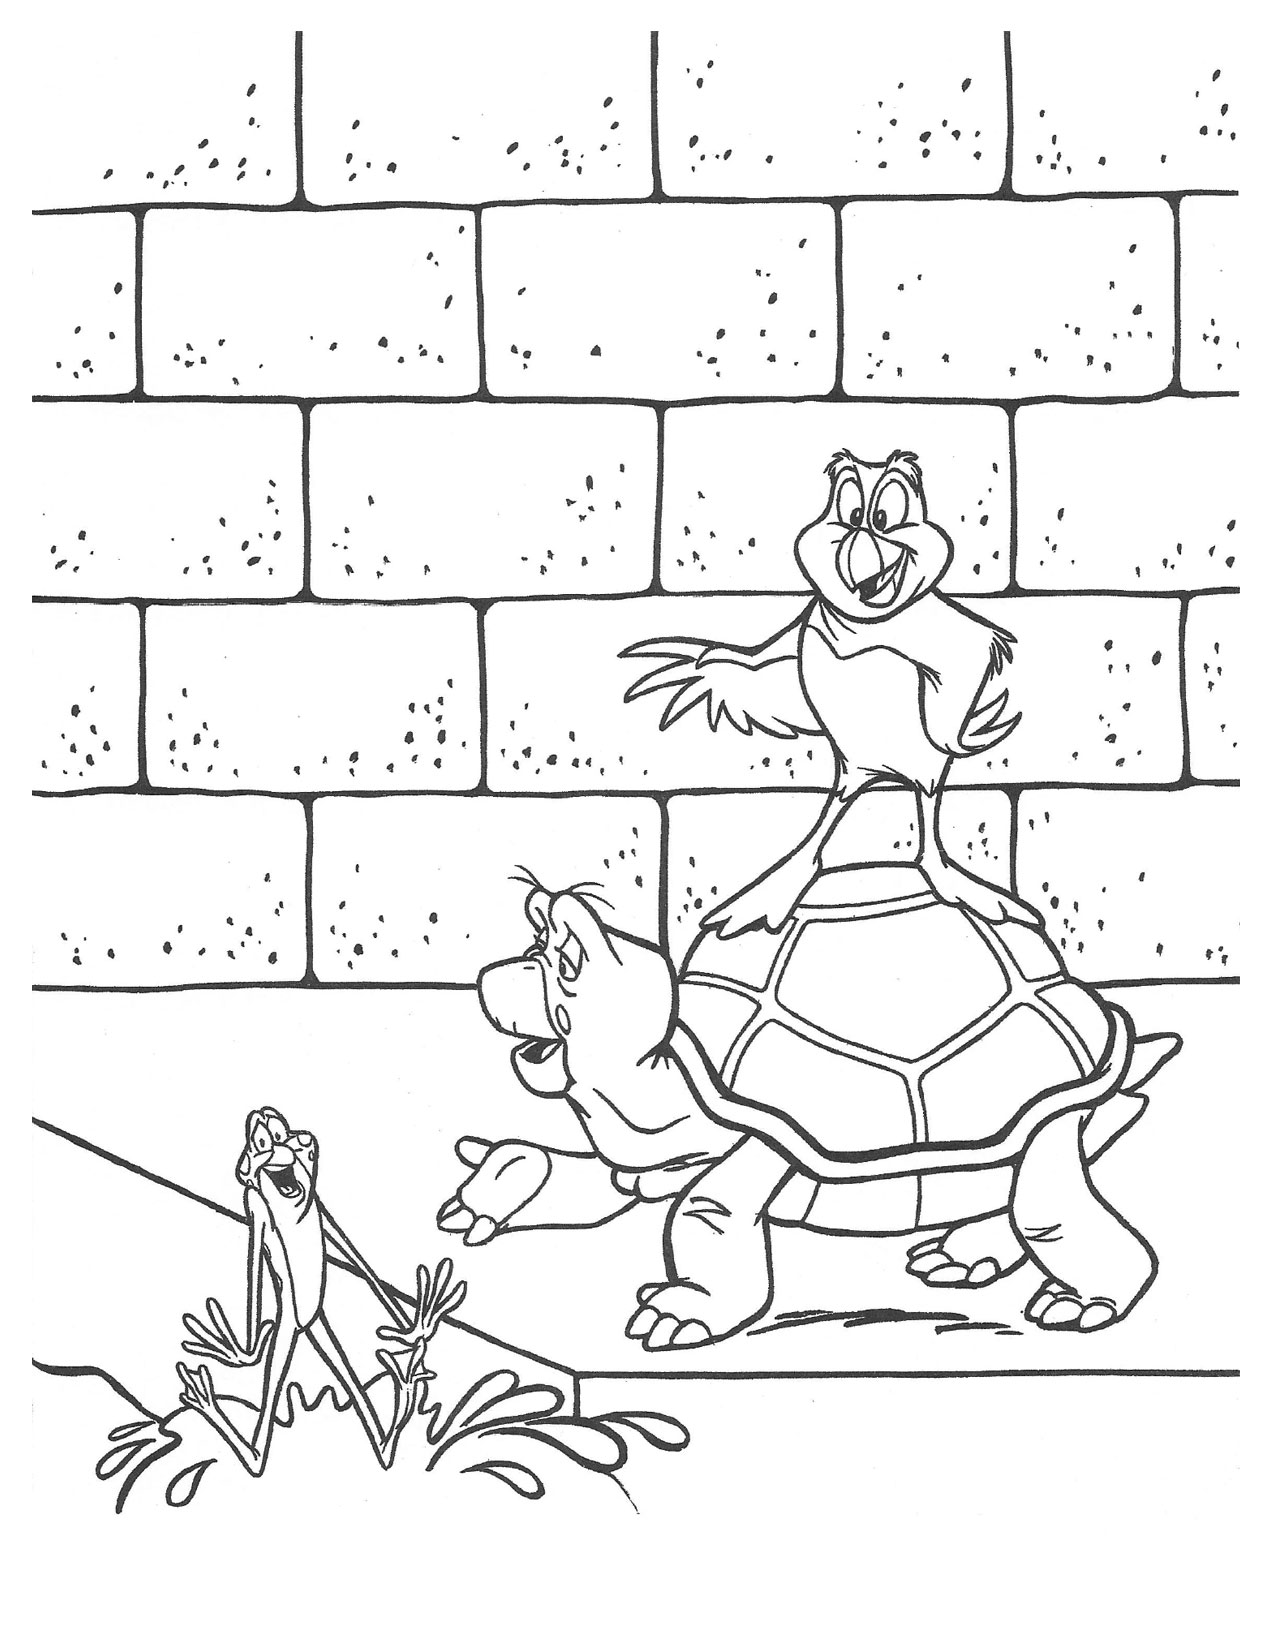 Swan Princess Speed Jean-Bob and puffin coloring page